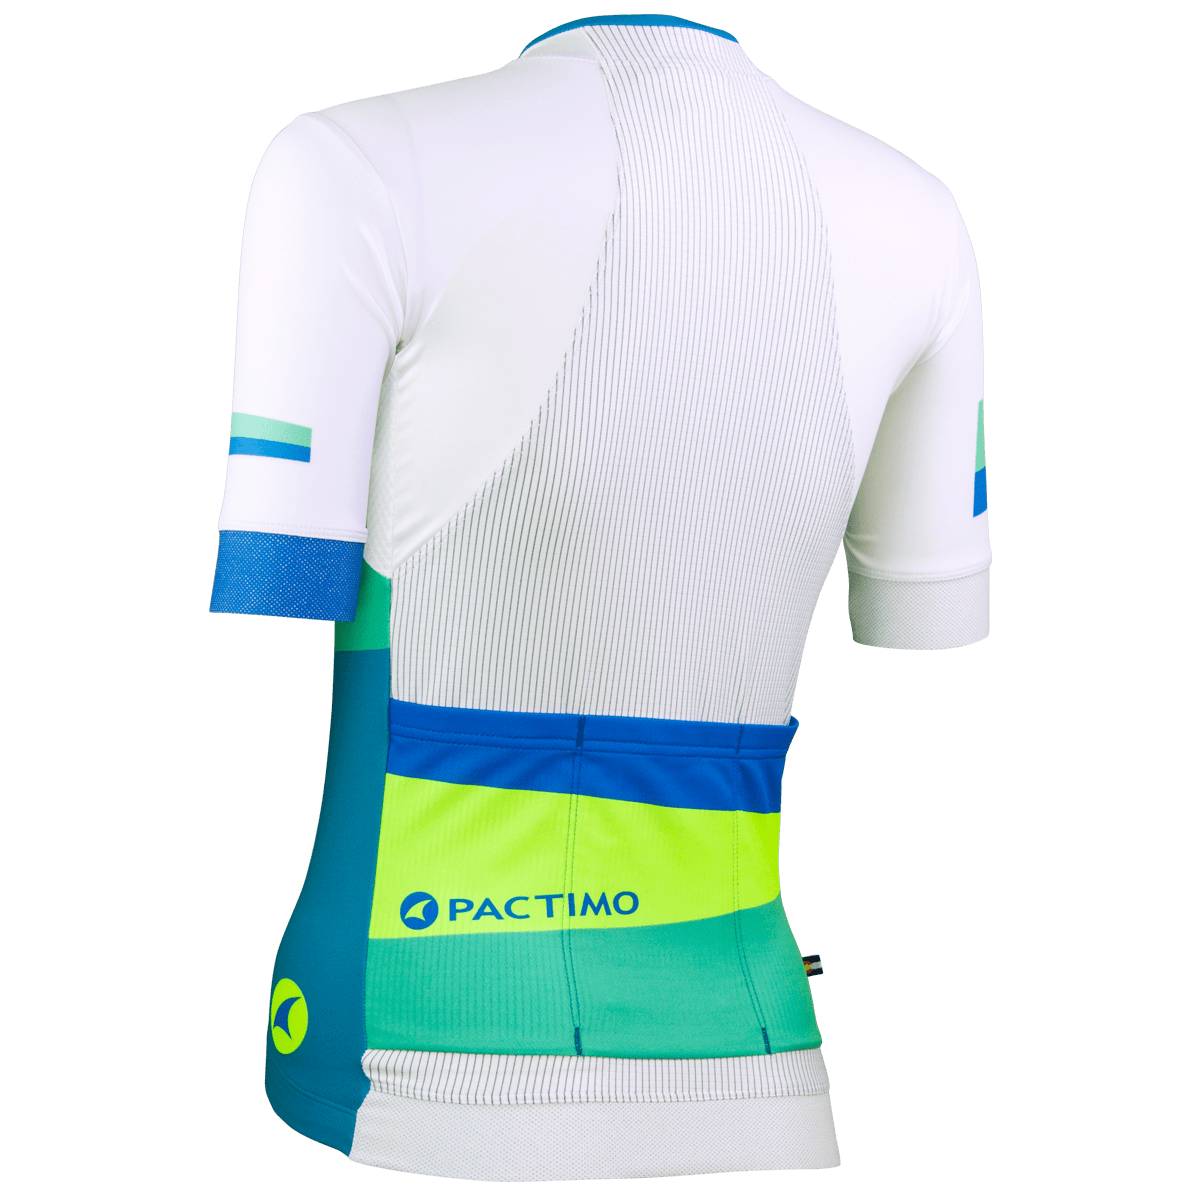 Hands on with Pactimo s Stylish and Functional 2015 Spring Branded ... 71d6466a0